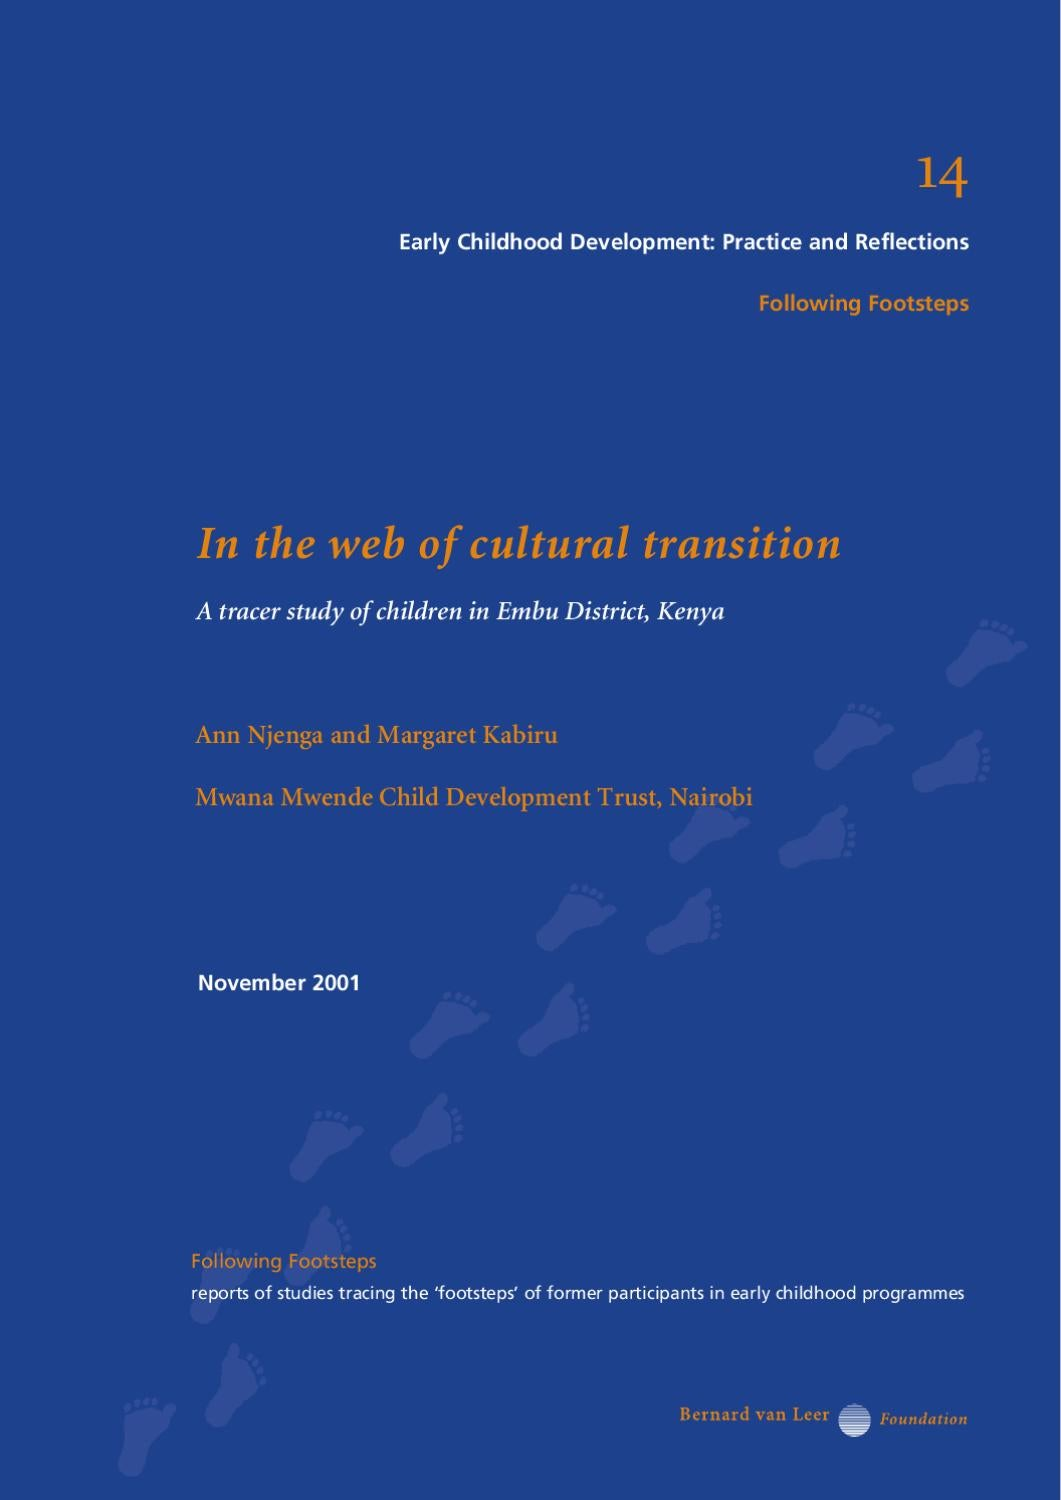 In the web of cultural transition: A tracer study of